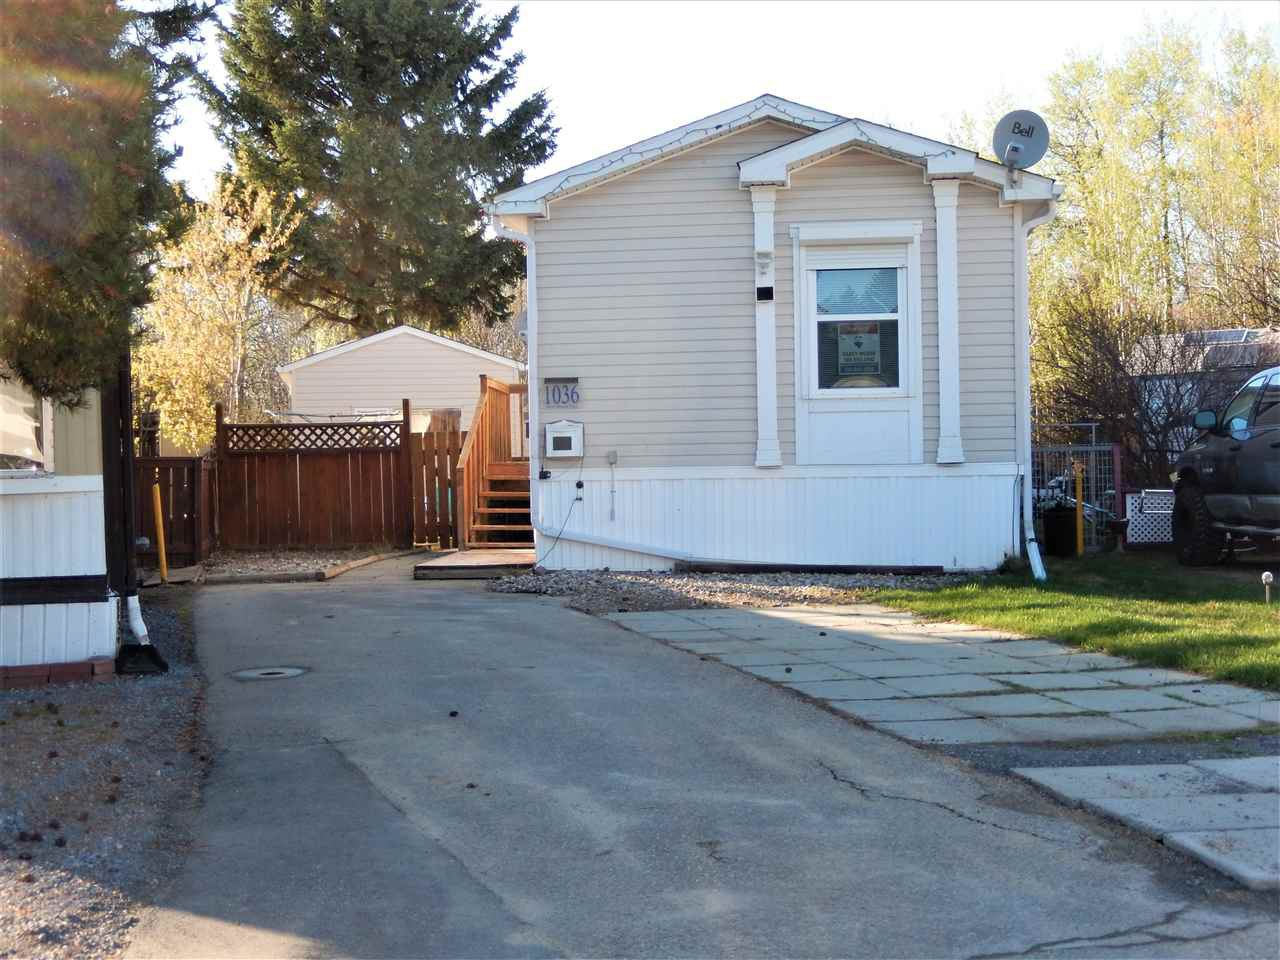 Main Photo: 1036 WEST MOUNT Crescent in Edmonton: Zone 59 Mobile for sale : MLS®# E4196633